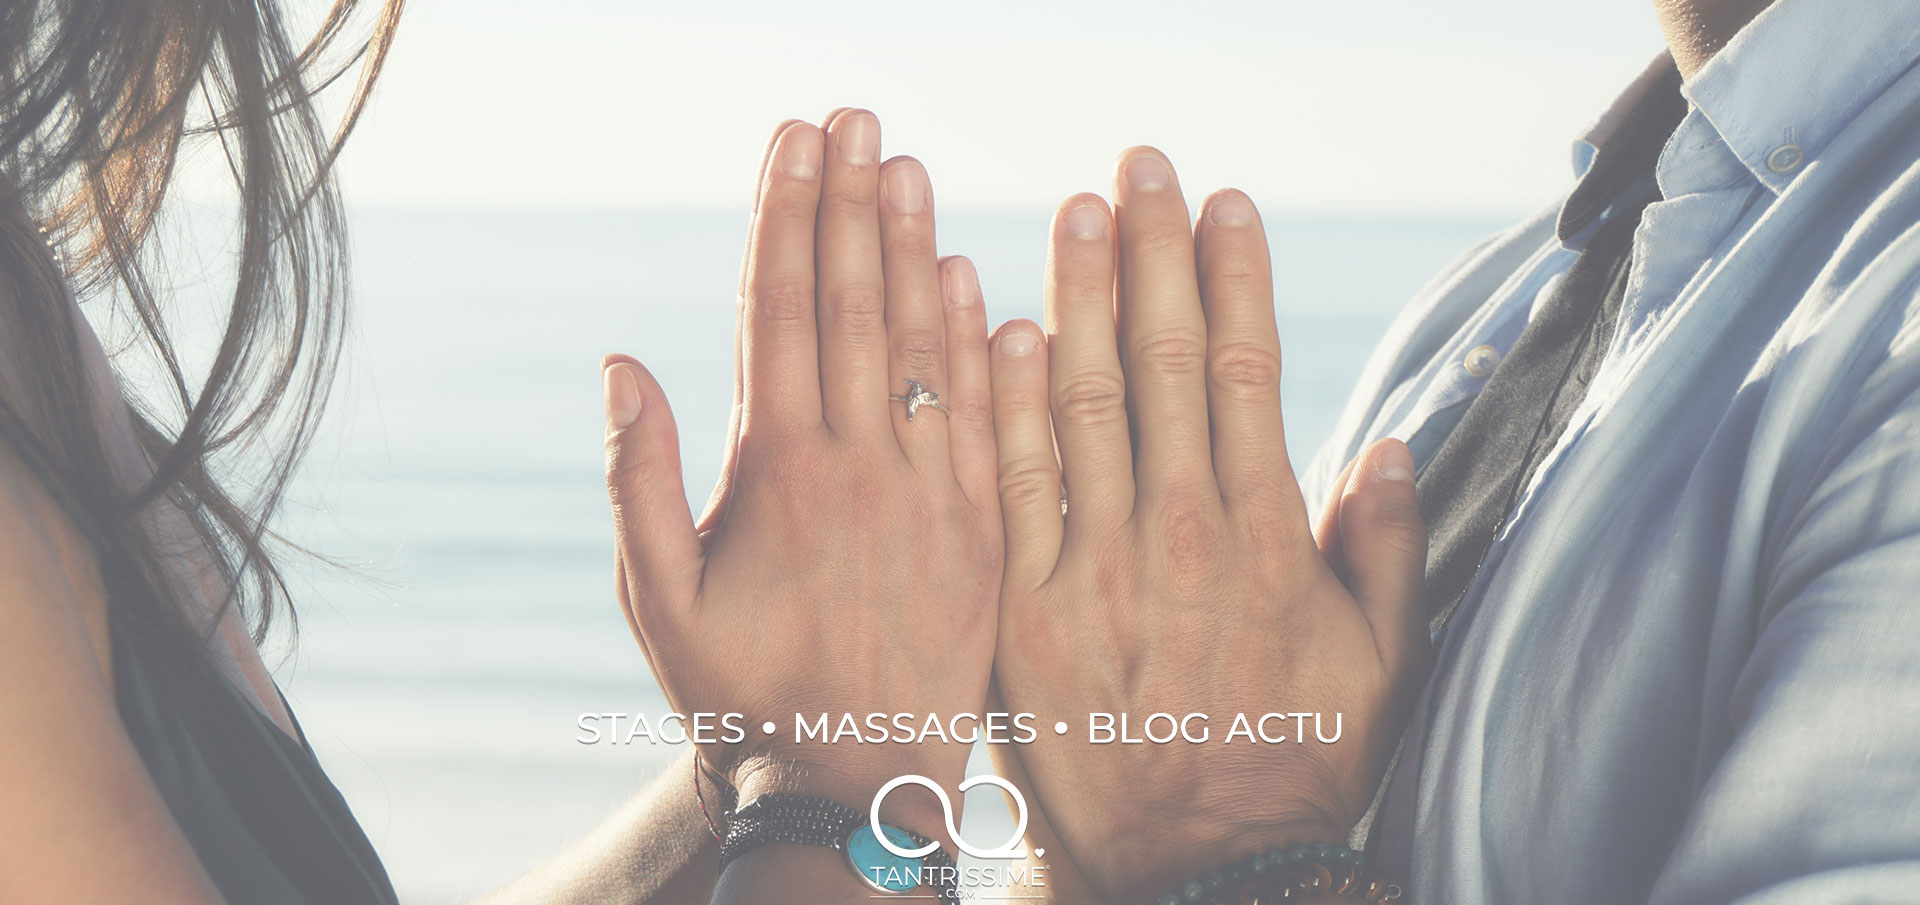 Tantra tantrisme stages massages blog